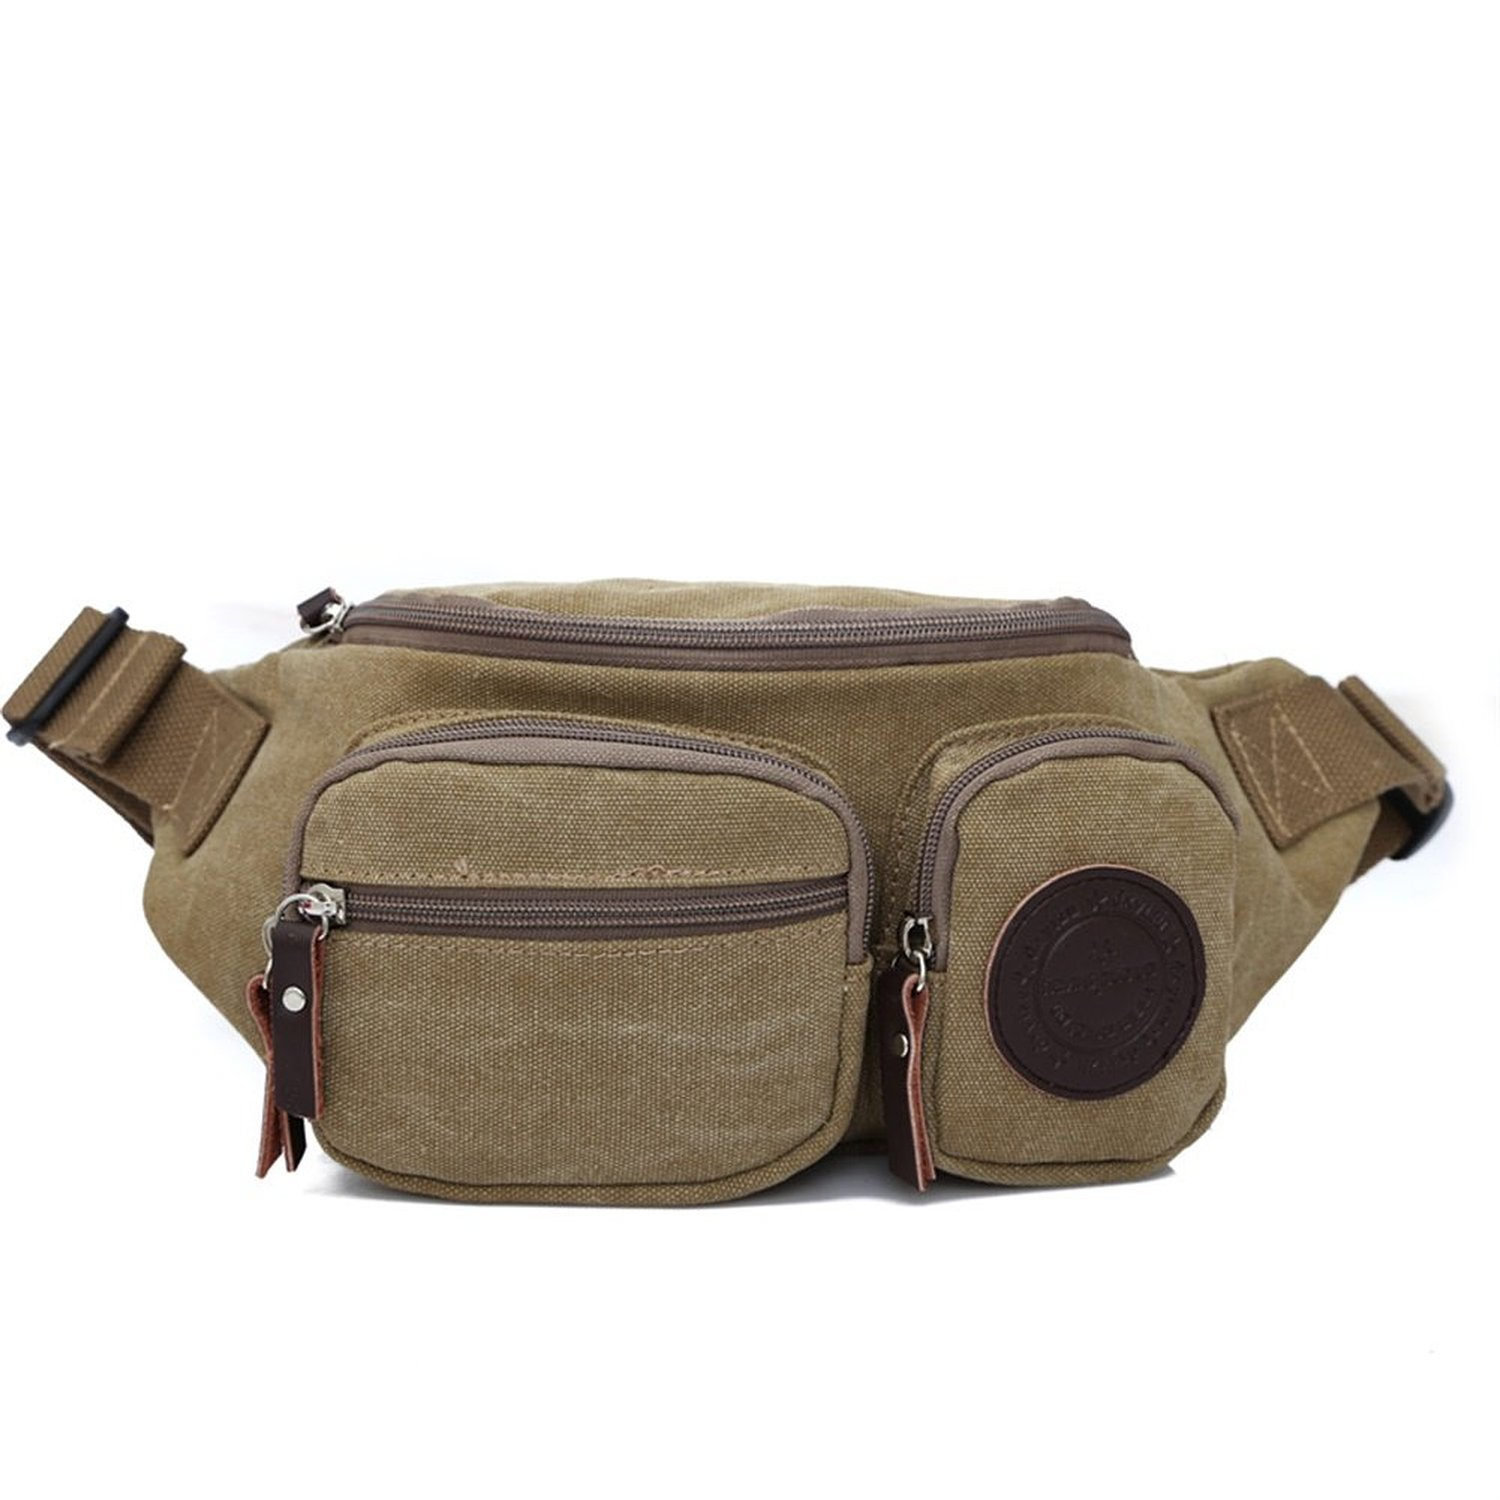 9c1caadc26 Get Quotations · YGORUI Outdoor Sports Casual Bags One Shoulder Bag Sling  Bag Canvas Backpack Rucksack Backpack Hiking Running